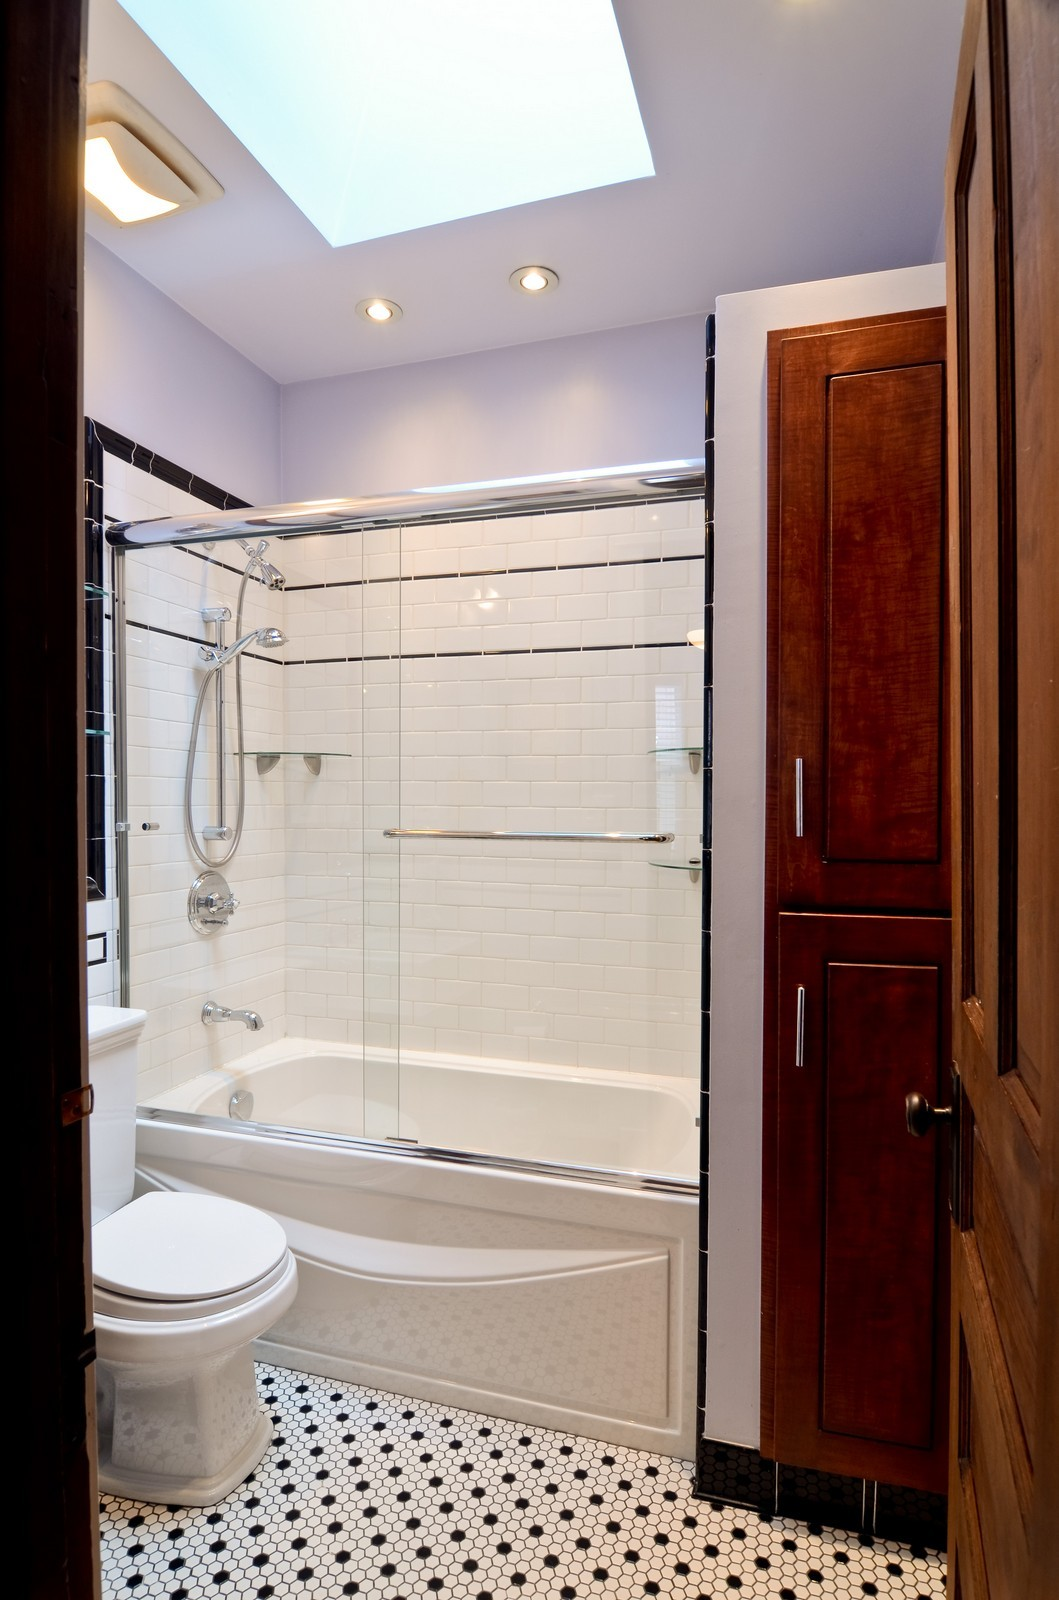 Real Estate Photography - 2519 N St. Louis, Chicago, IL, 60647 - Bathroom